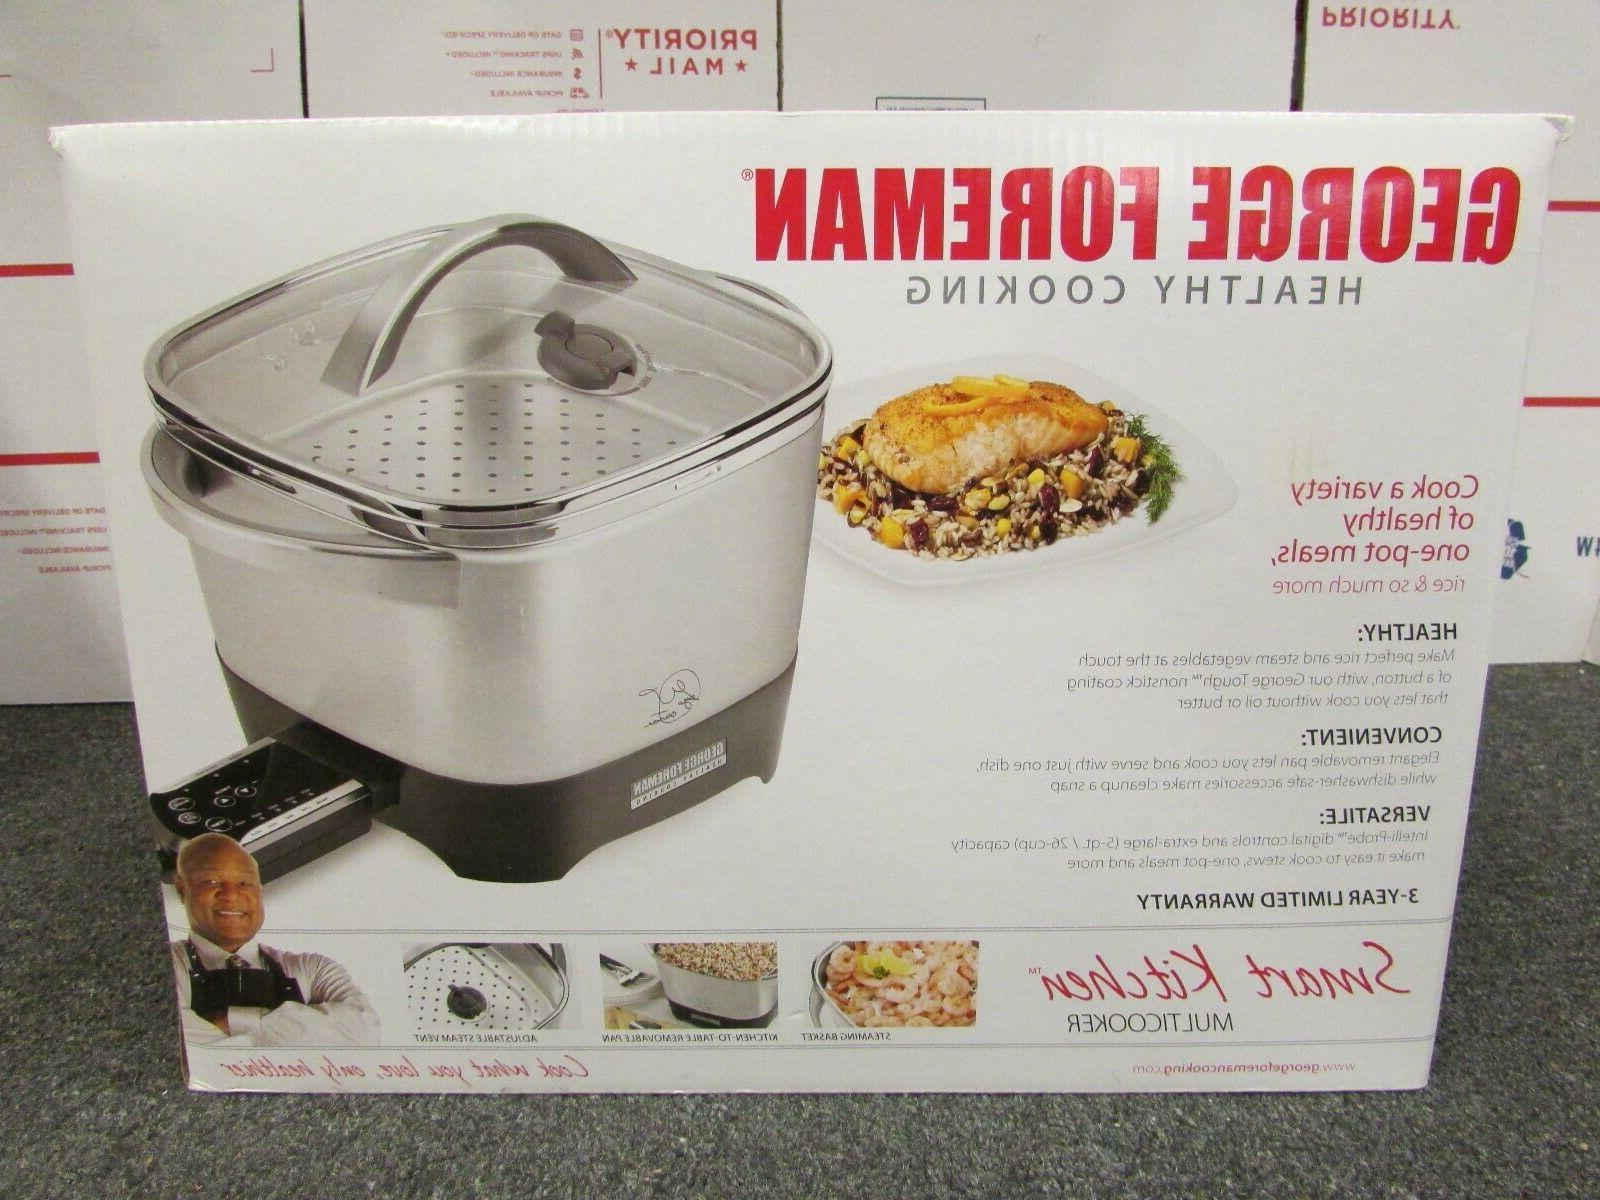 healthy cooking smart kitchen multi cooker new